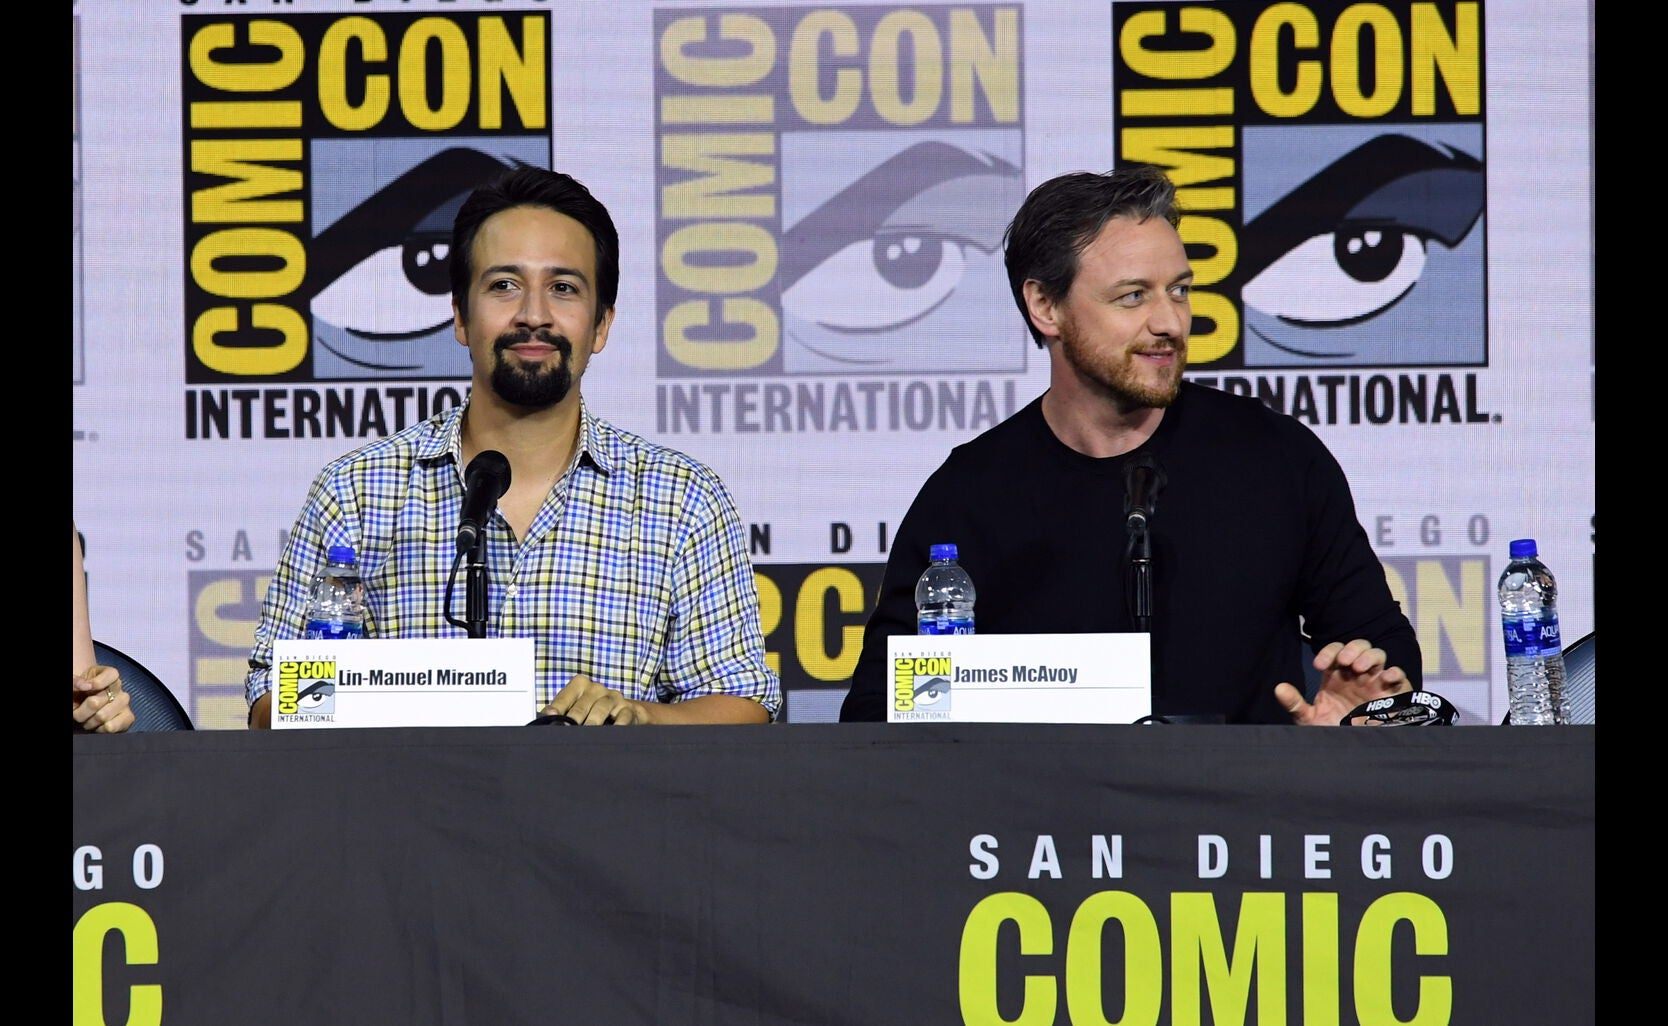 James McAvoy and Lin Manuel Miranda at SDCC2019